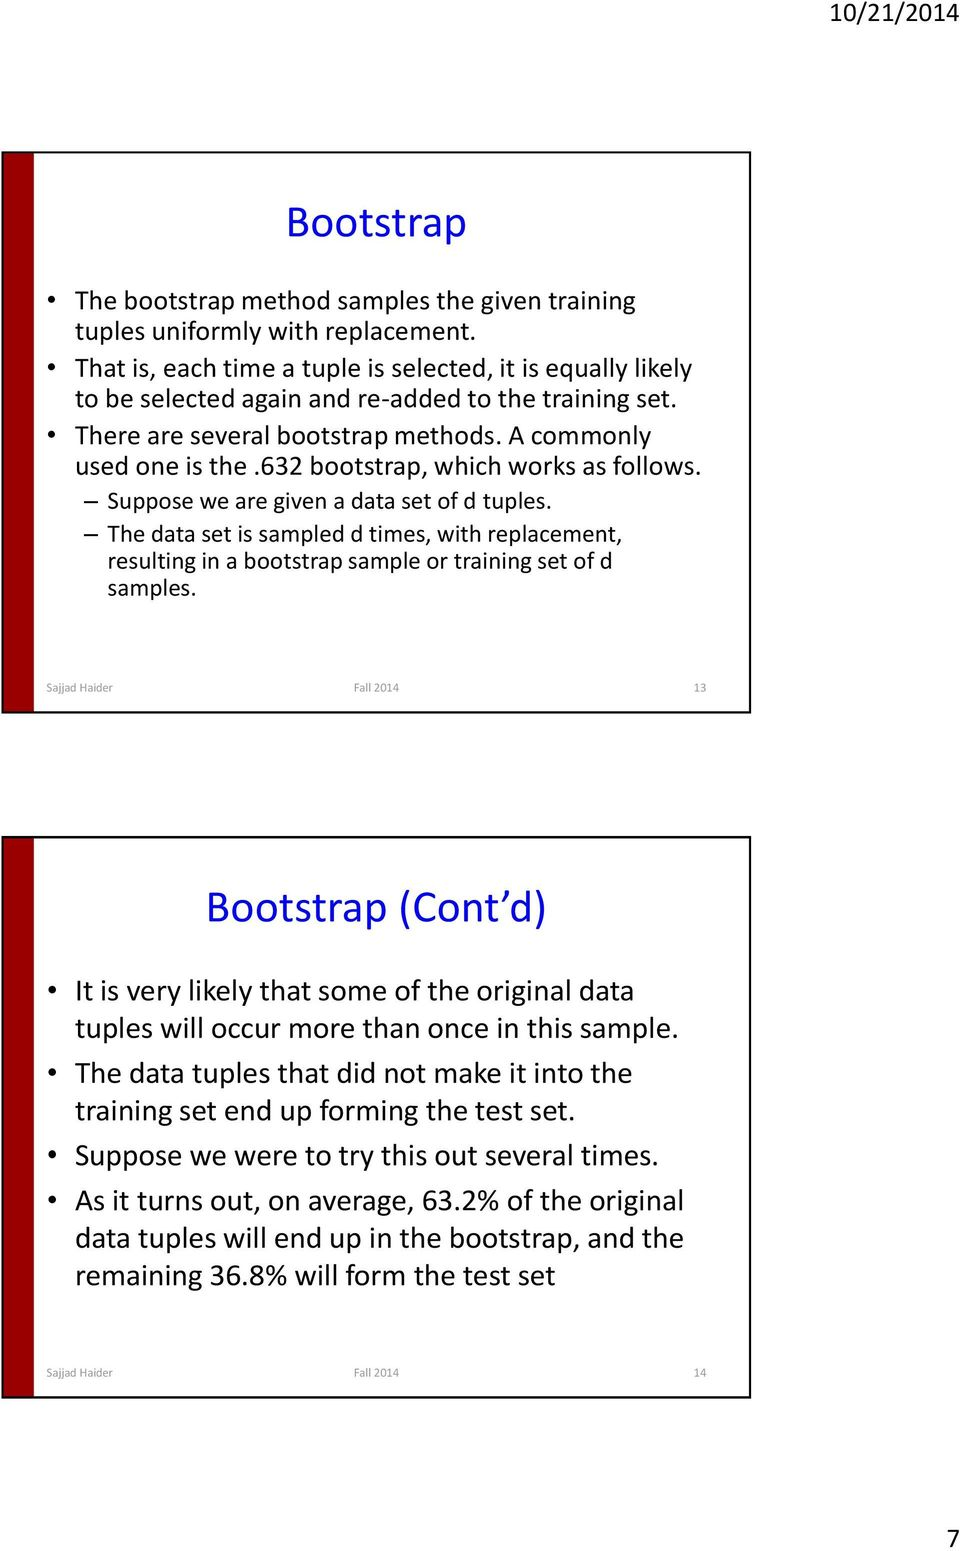 632 bootstrap, which works as follows. Suppose we are given a data set of d tuples. The data set is sampled d times, with replacement, resulting in a bootstrap sample or training set of d samples.